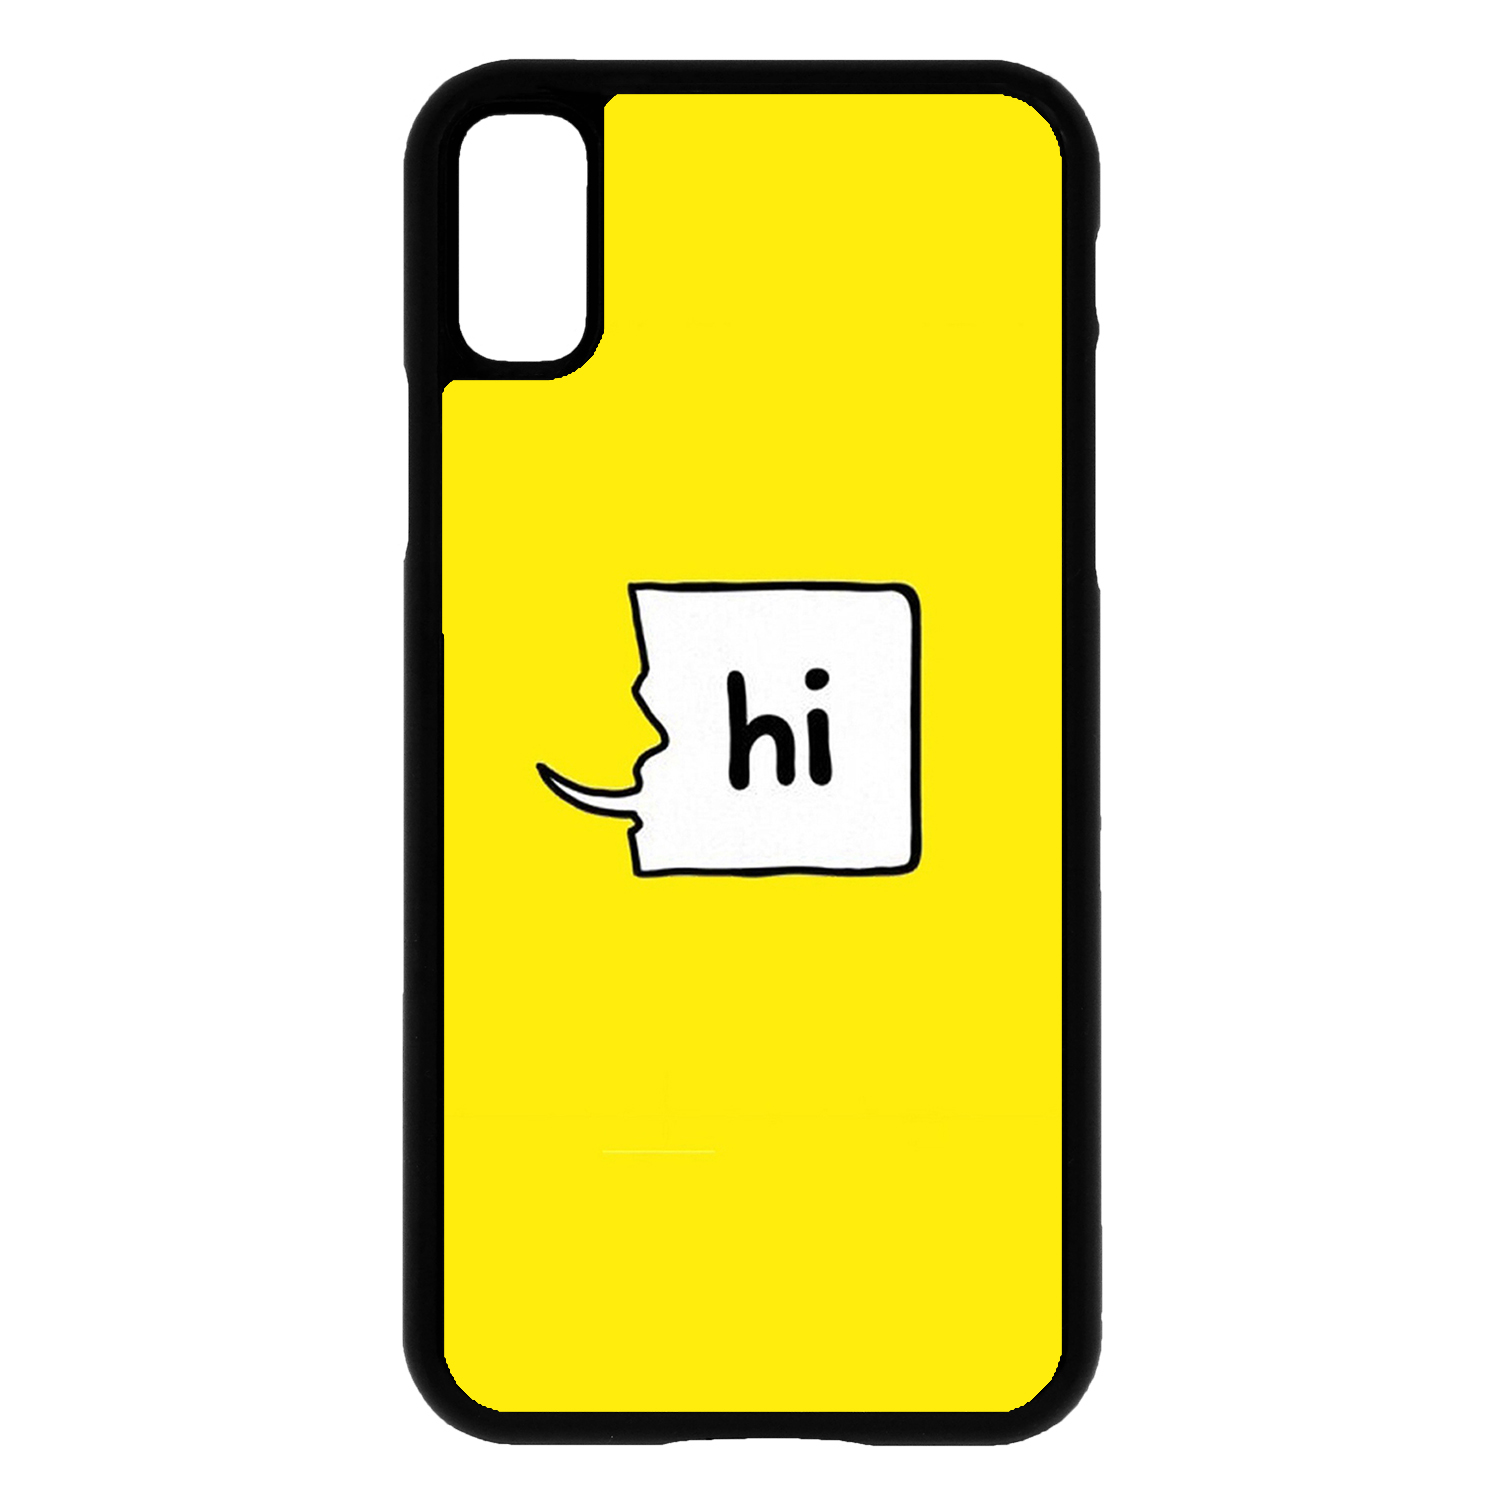 sell my iphone sayings quotes cover for apple iphone 6 amp plus a4 1171